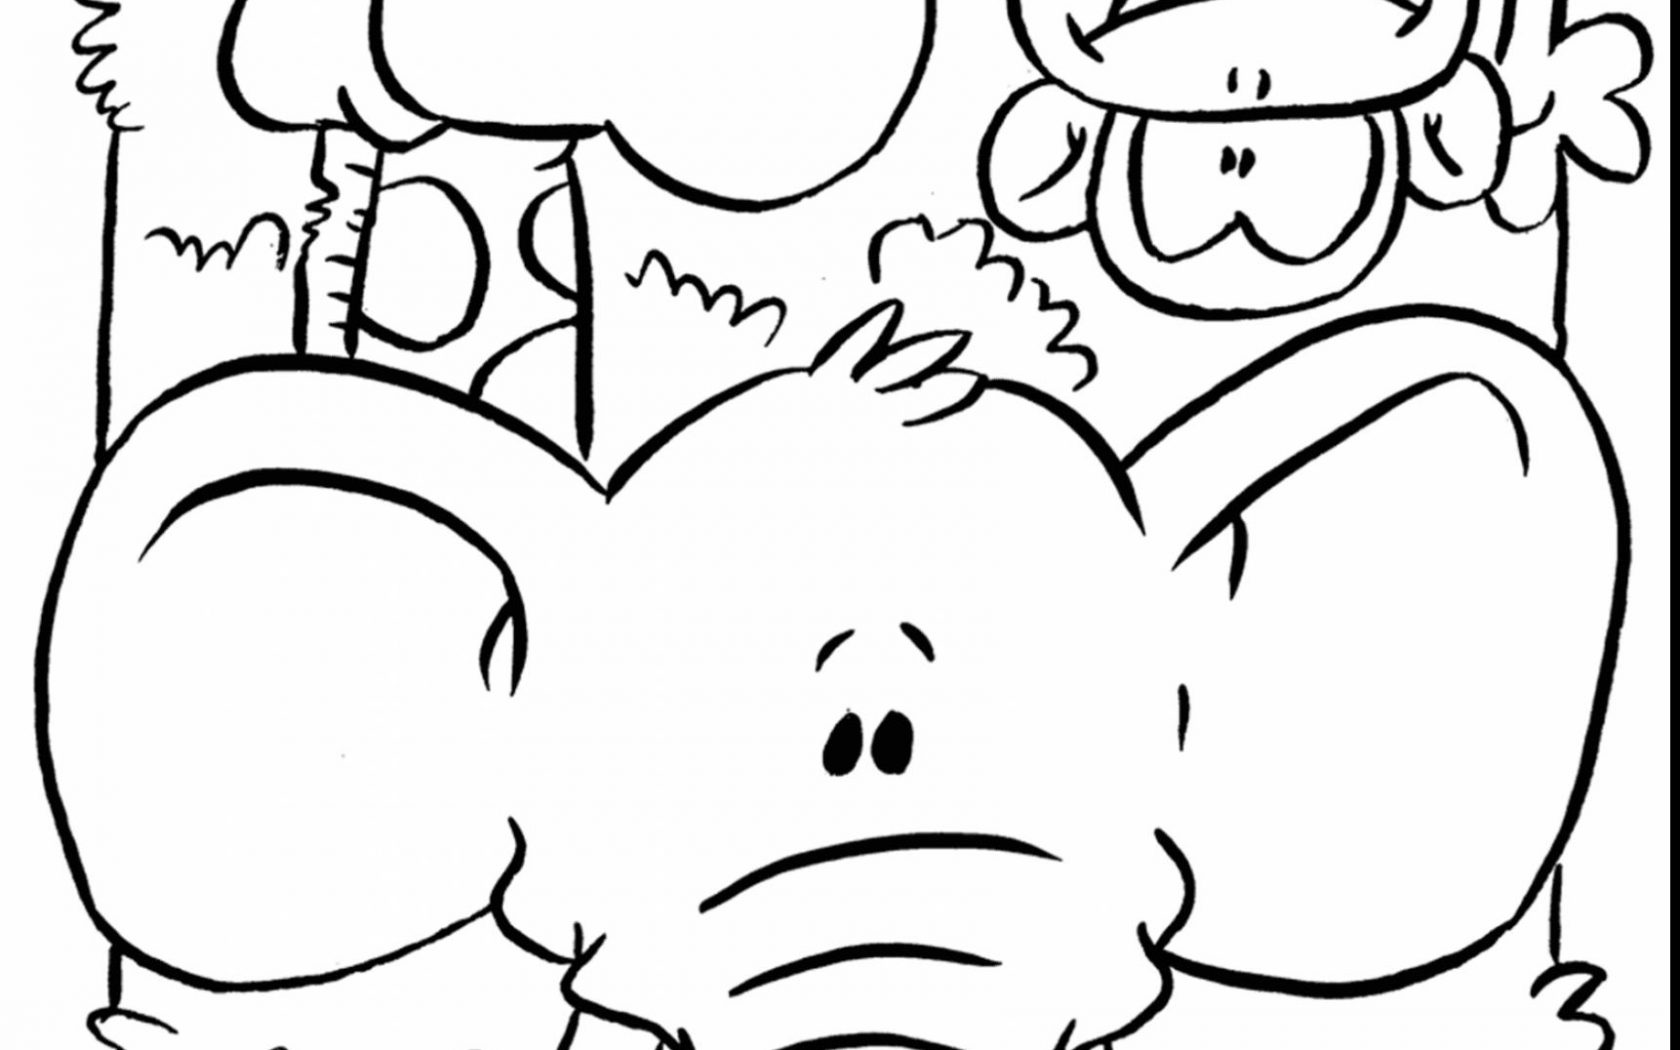 1680x1050 Family Coloring Pages Preschool For Amusing Page Image Colouring